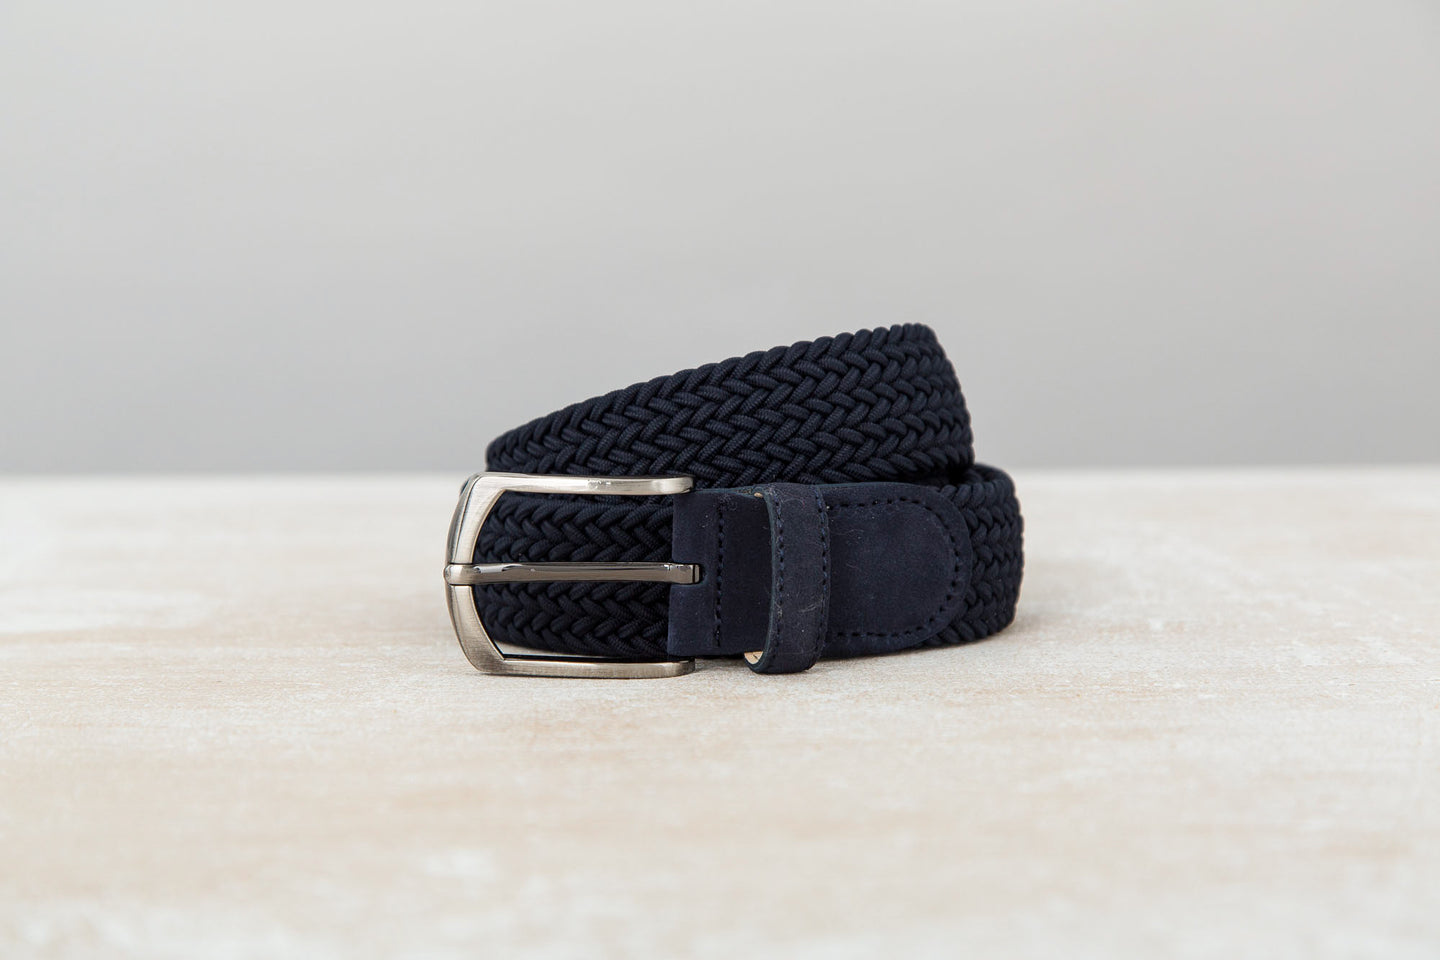 Navy/Navy Suede Braided Belts | J.FitzPatrick Belts For Men